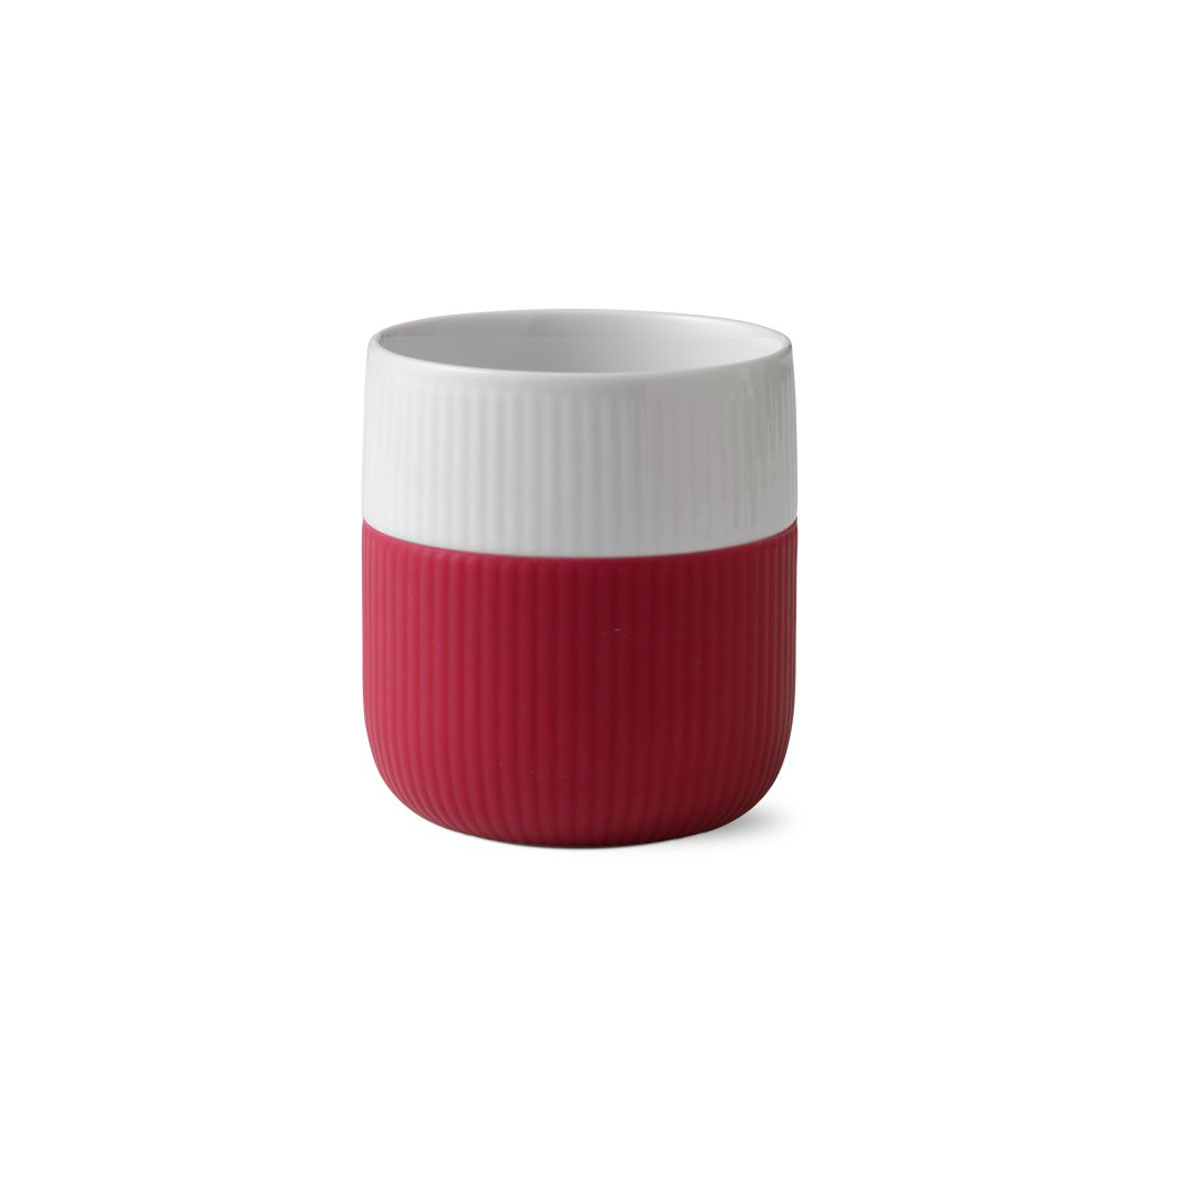 Royal Copenhagen, Contrast Mug Raspberry 11oz.